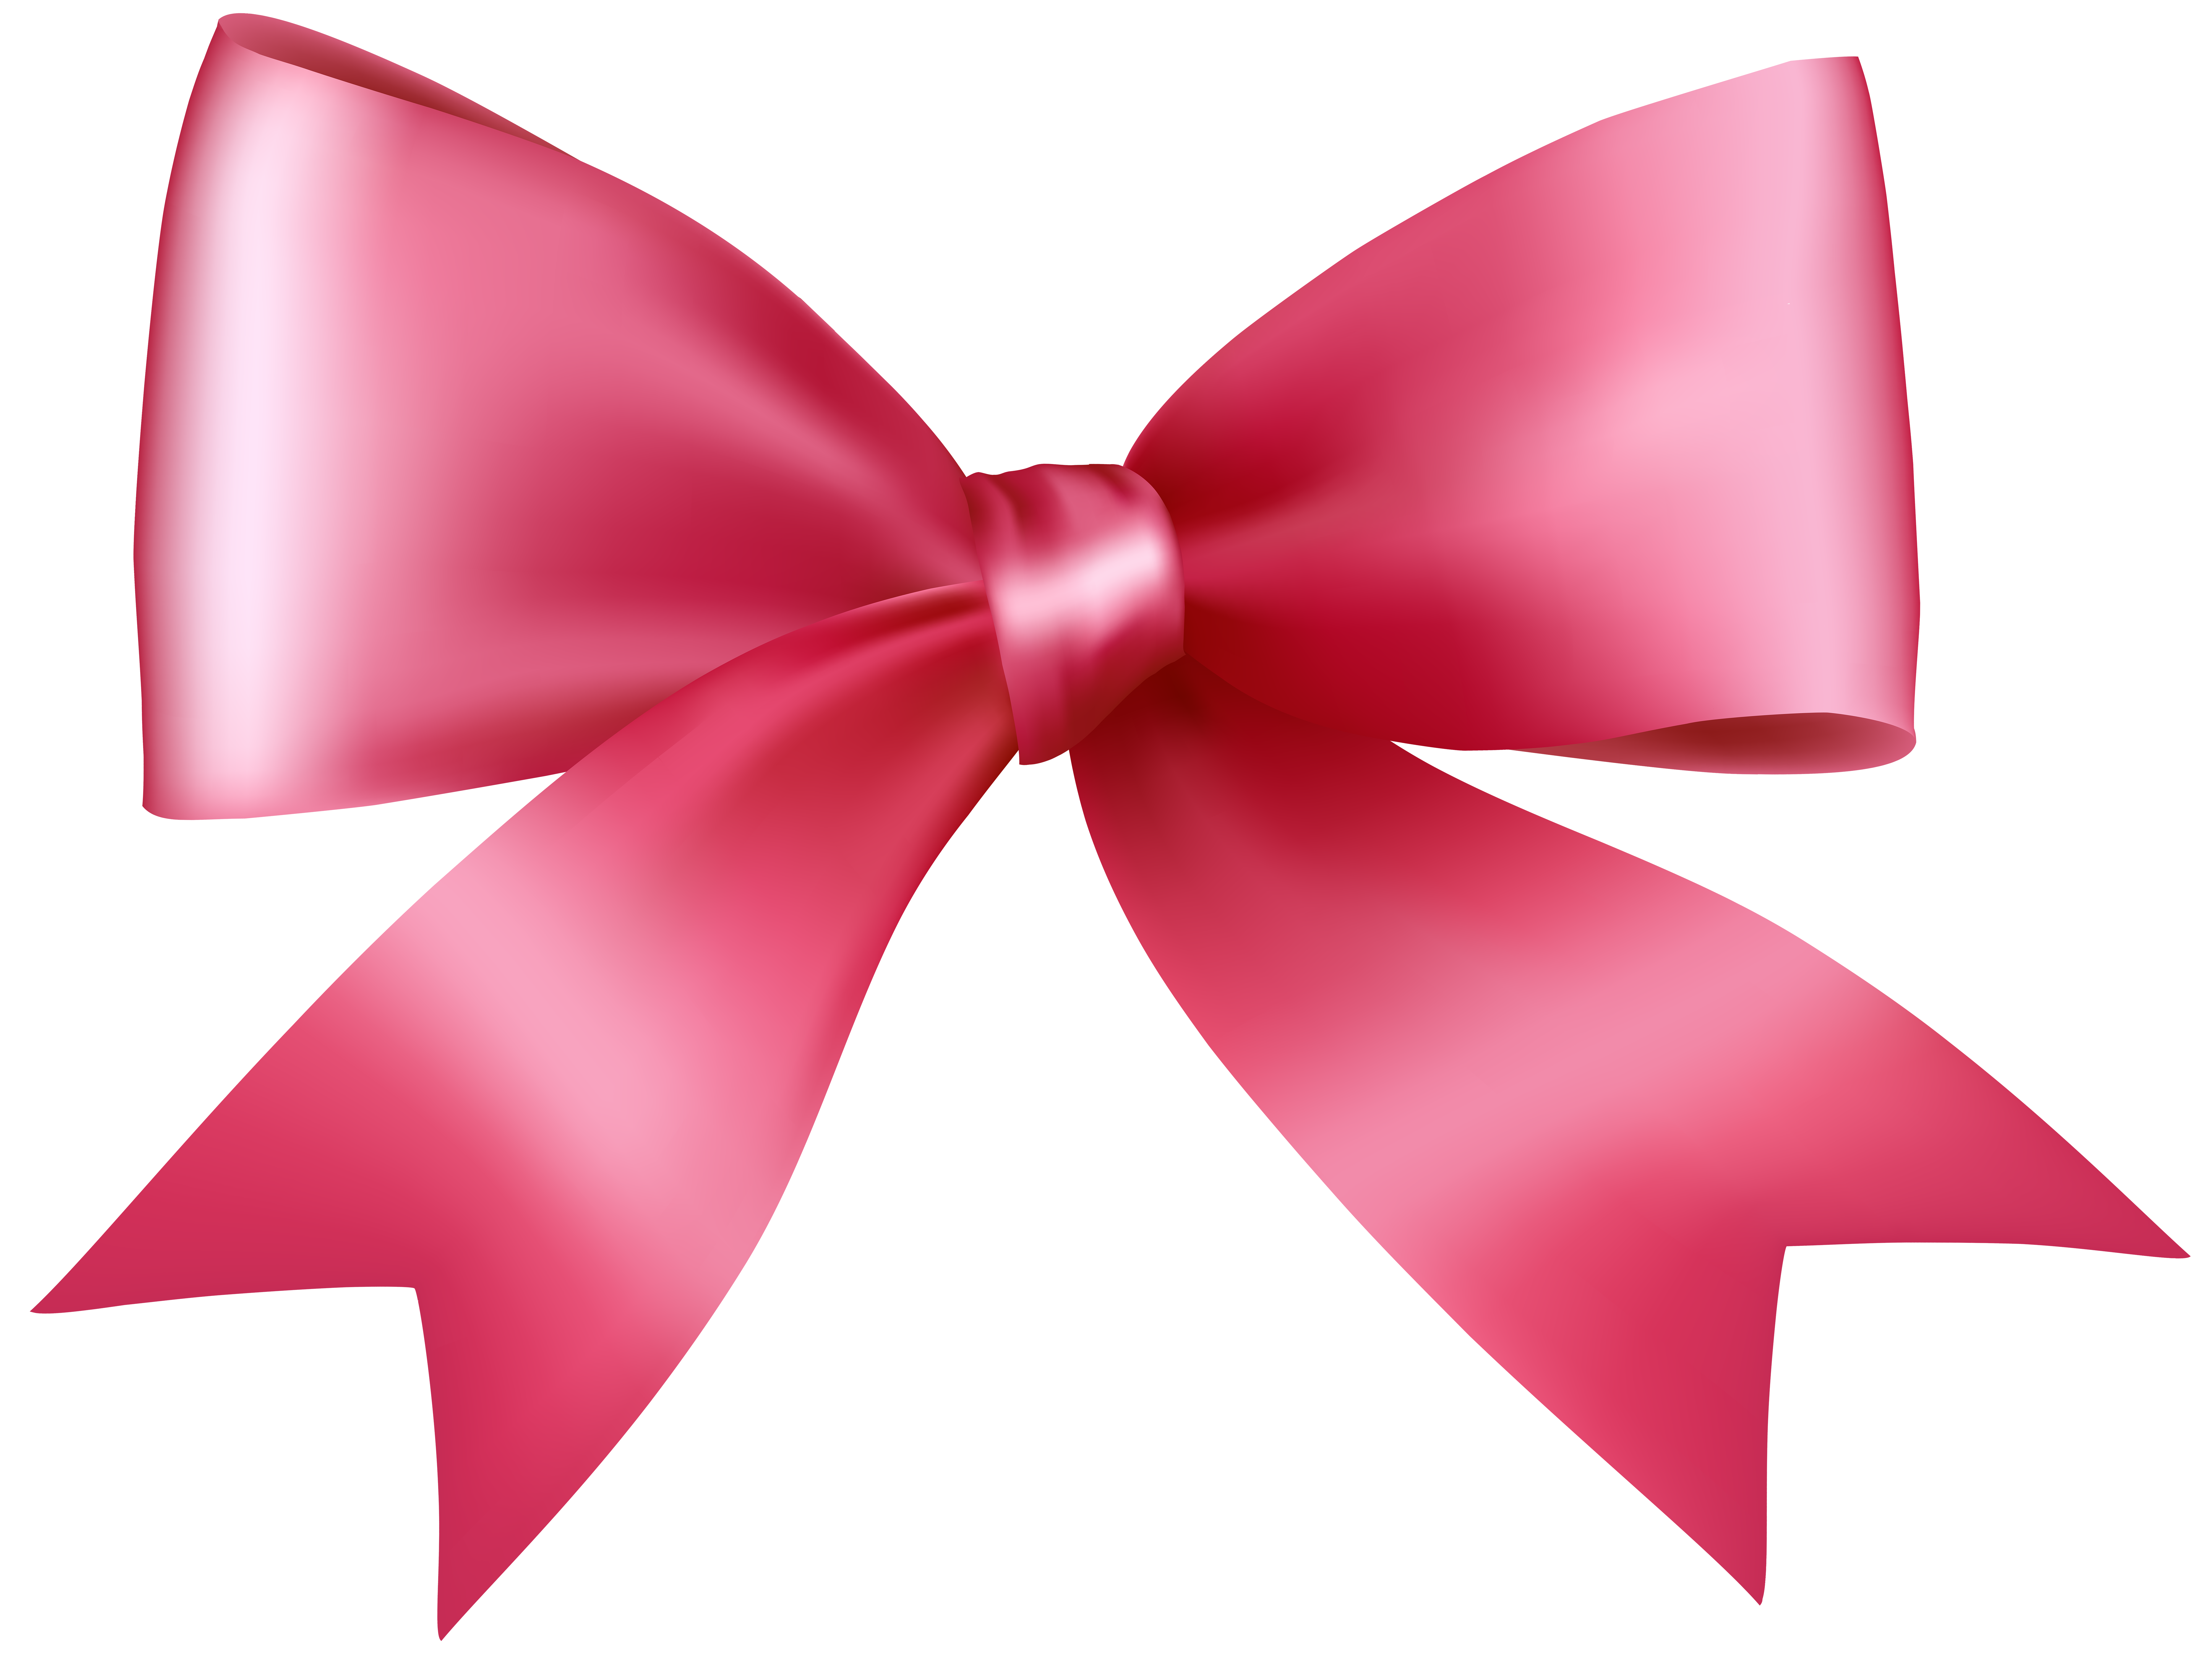 Bows clipart transparent background. Pink bow png clip